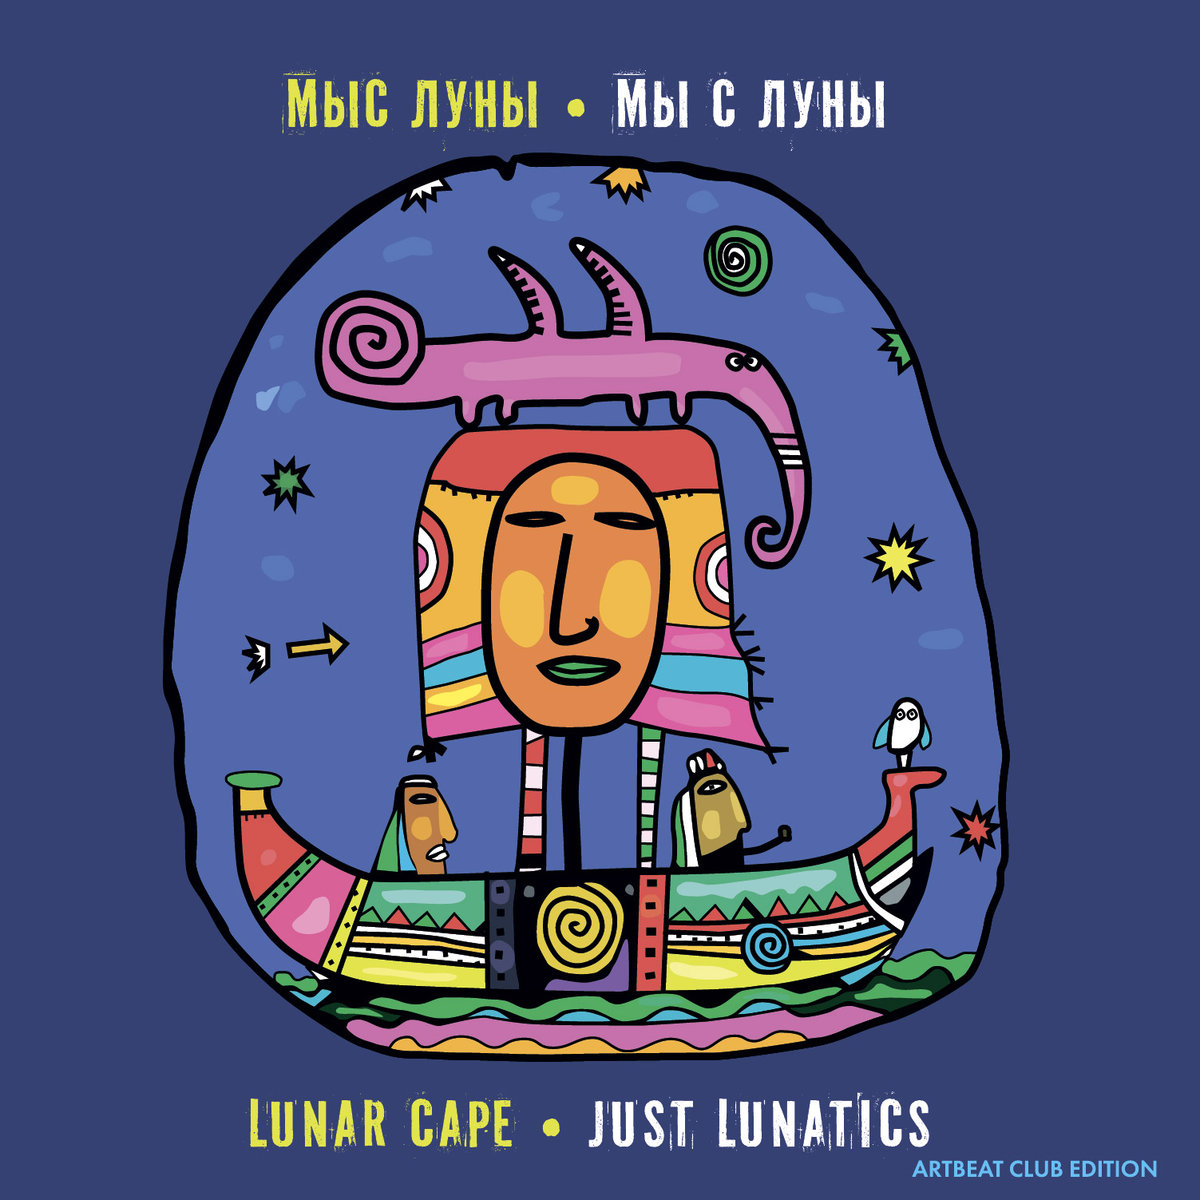 Lunar Cape - Blizzard @ 'Just Lunatics' album (jazz fusion, soundtrack)